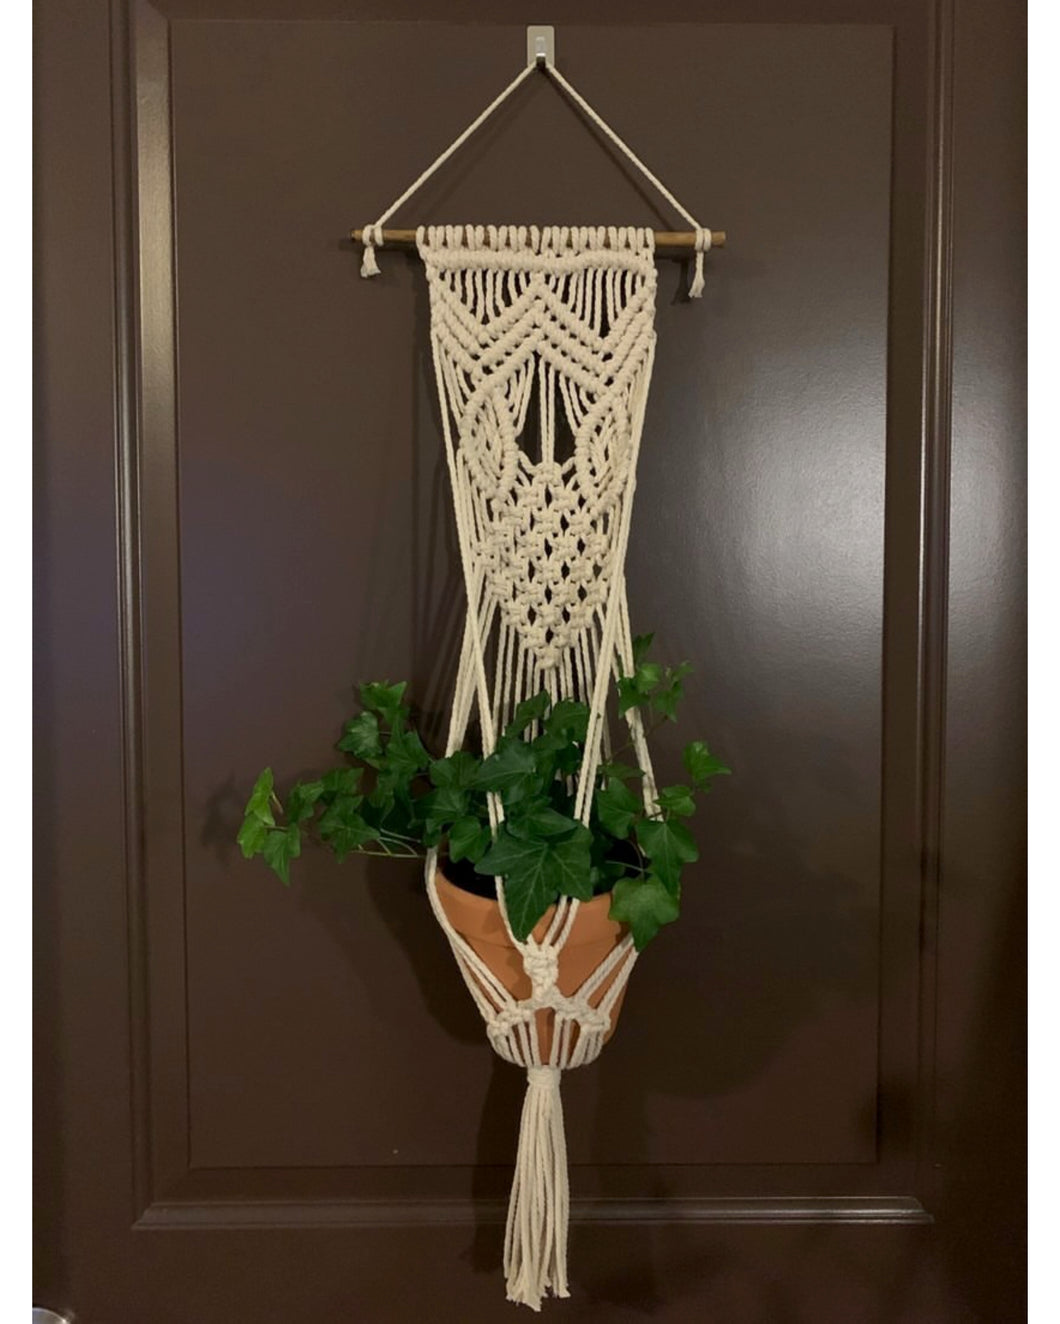 Special Edition Large Plant Hanger